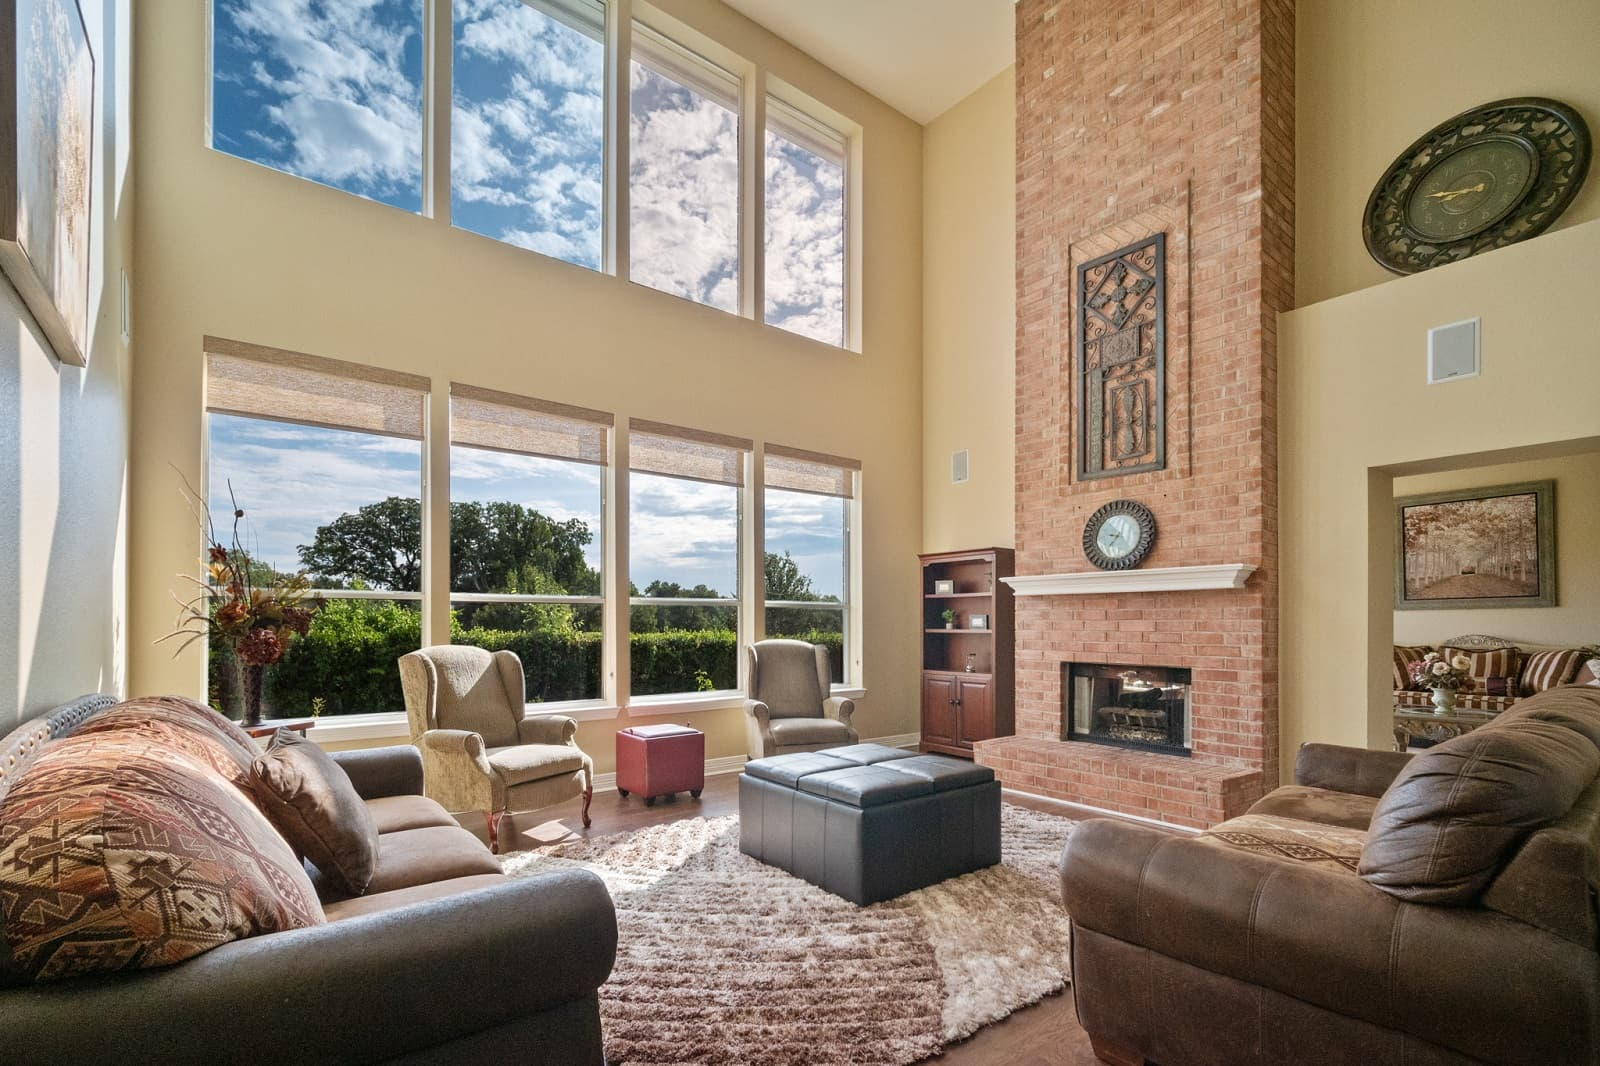 Real Estate Photography in Plano - TX - Living Area View